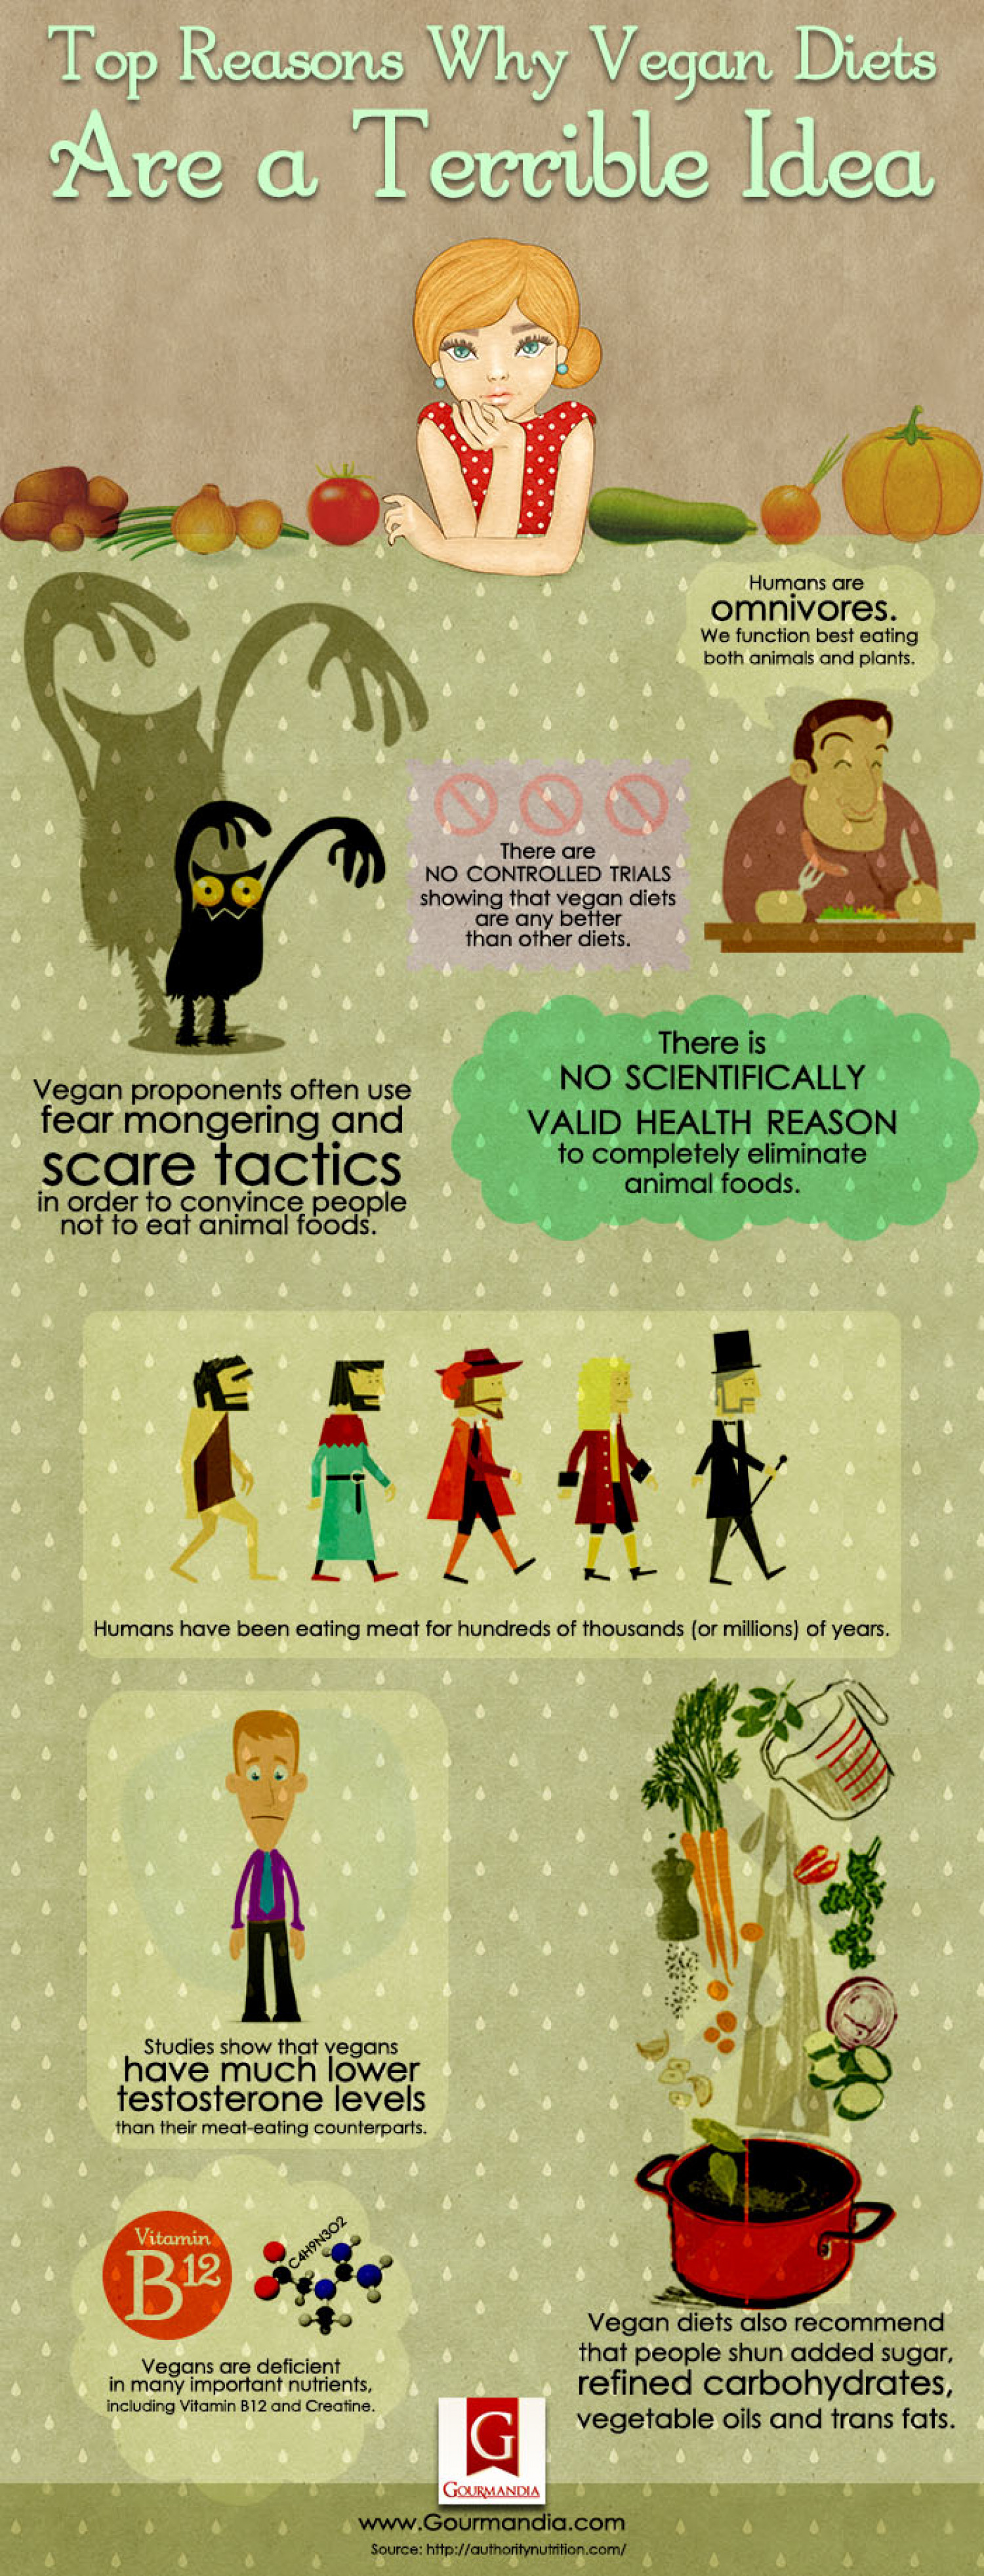 Vegan Diet A Terrible Idea Infographic